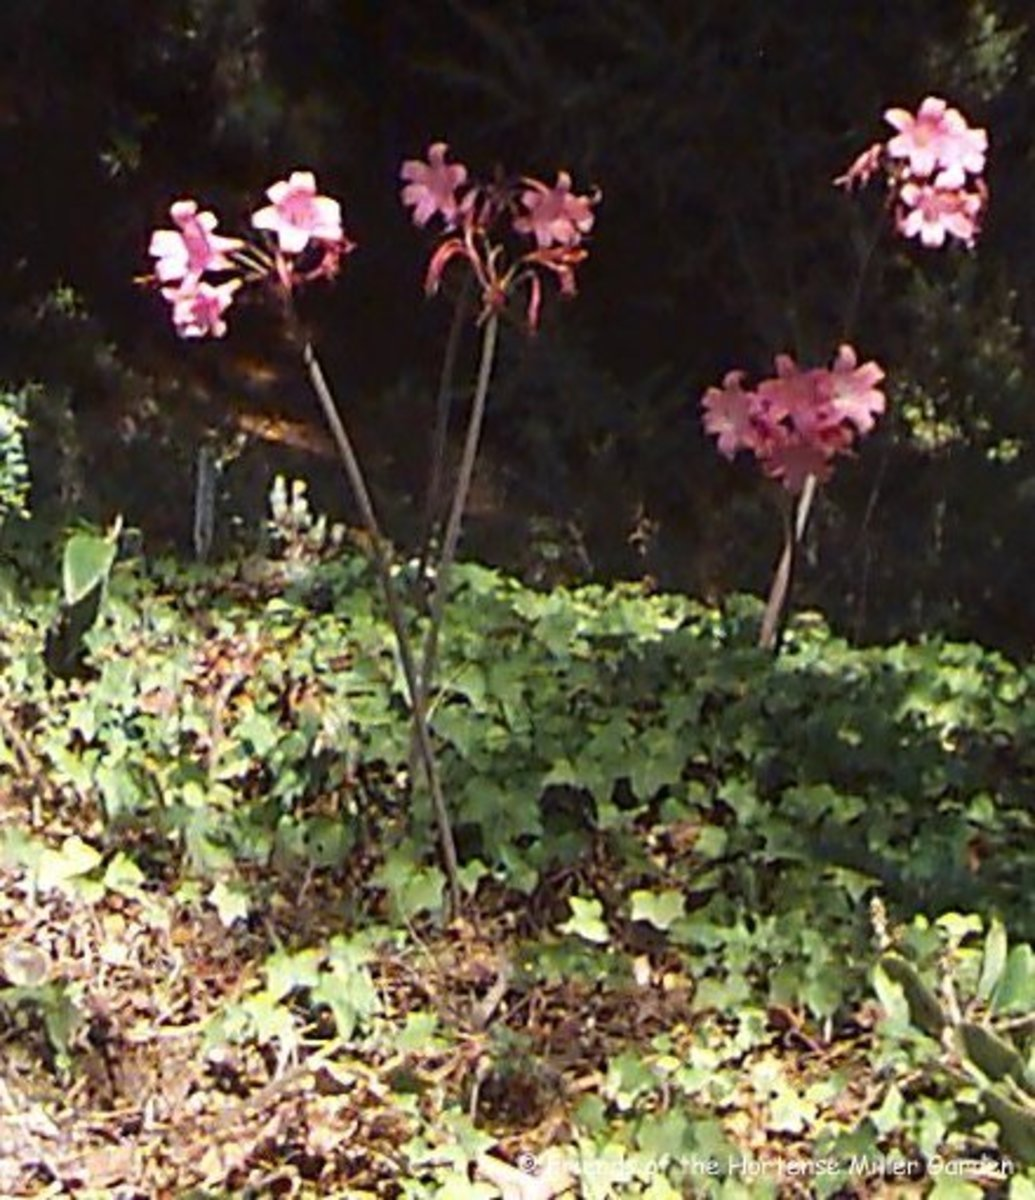 These naked lady lilies were planted too far apart and thus look a bit scattered.